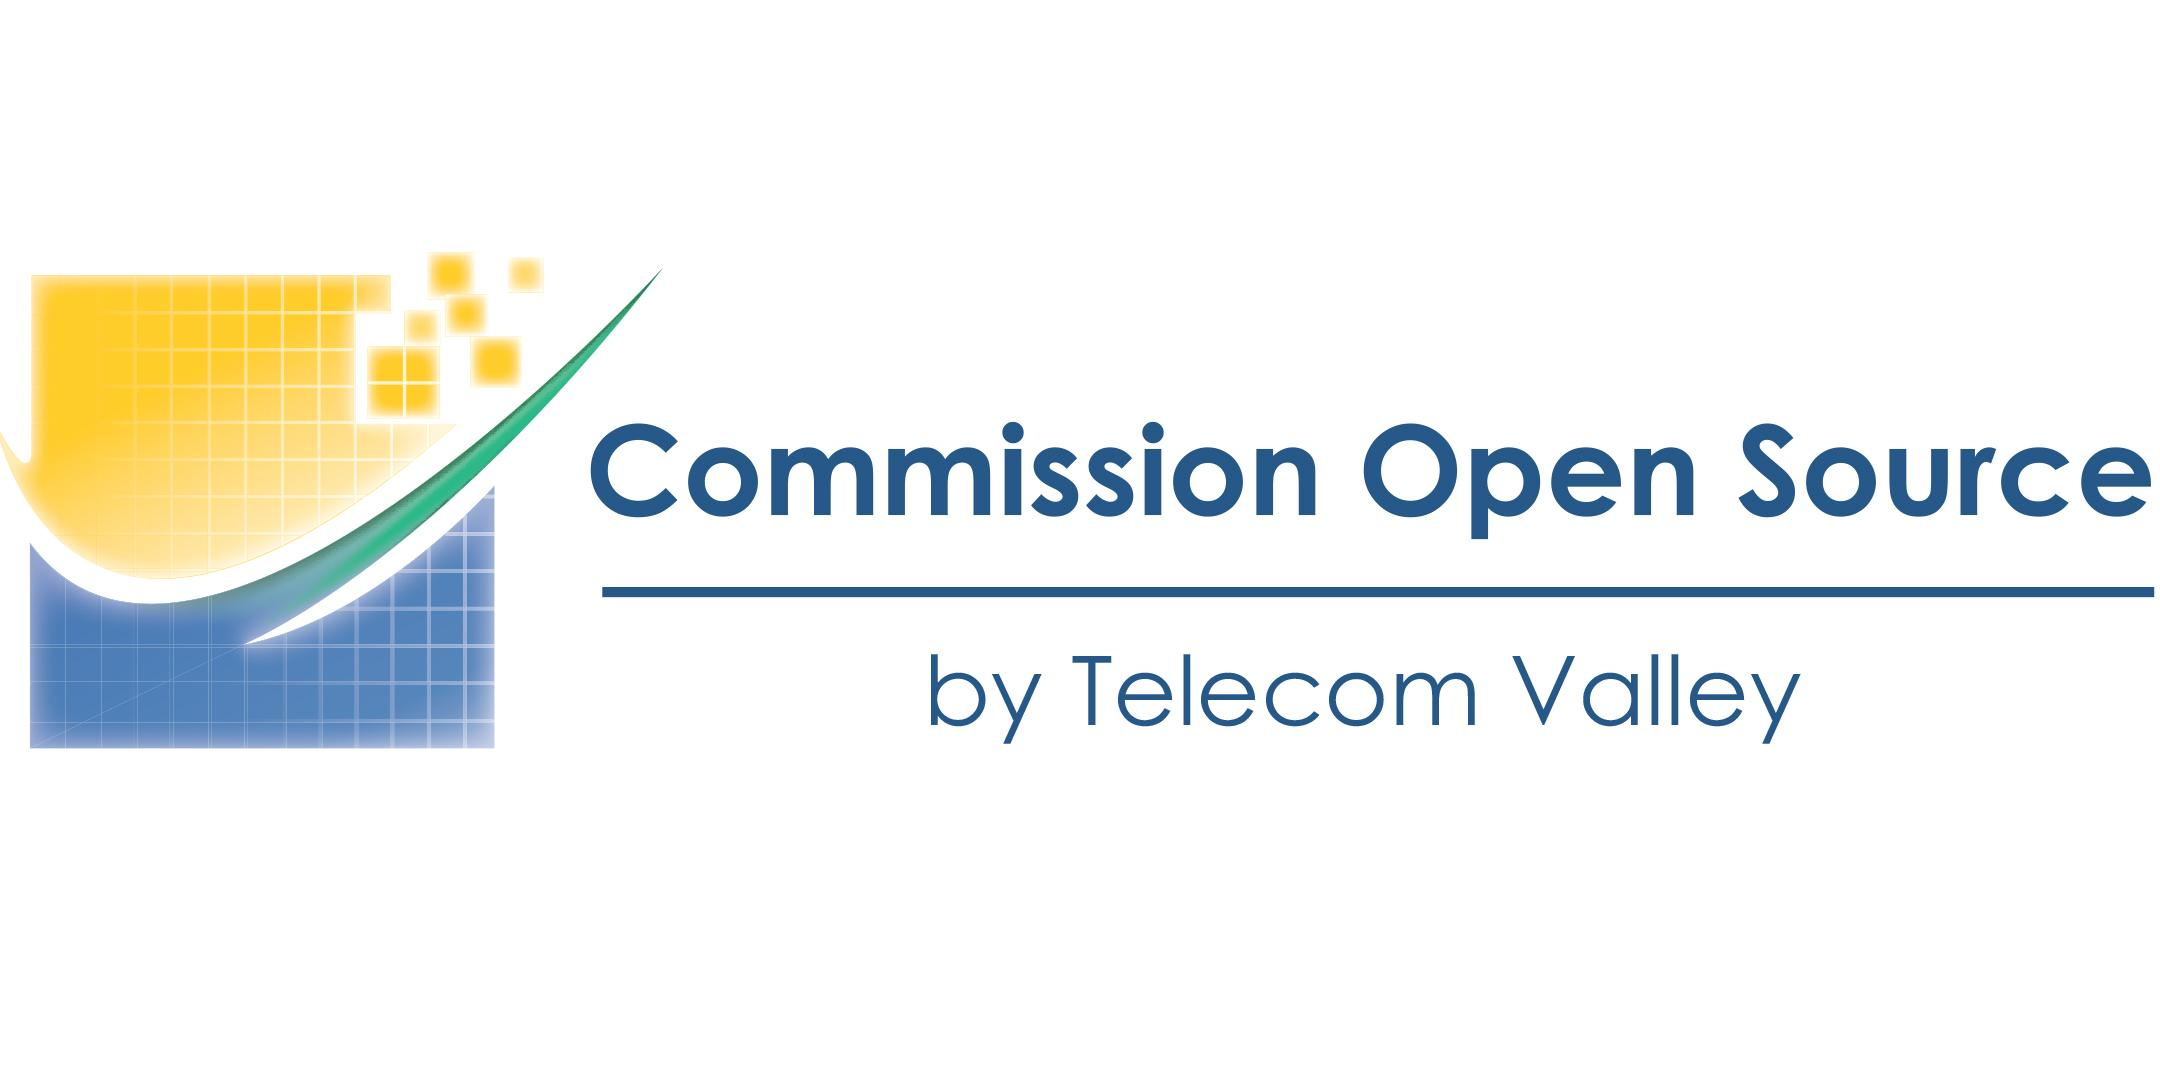 Commission Open Source - TELECOM VALLEY